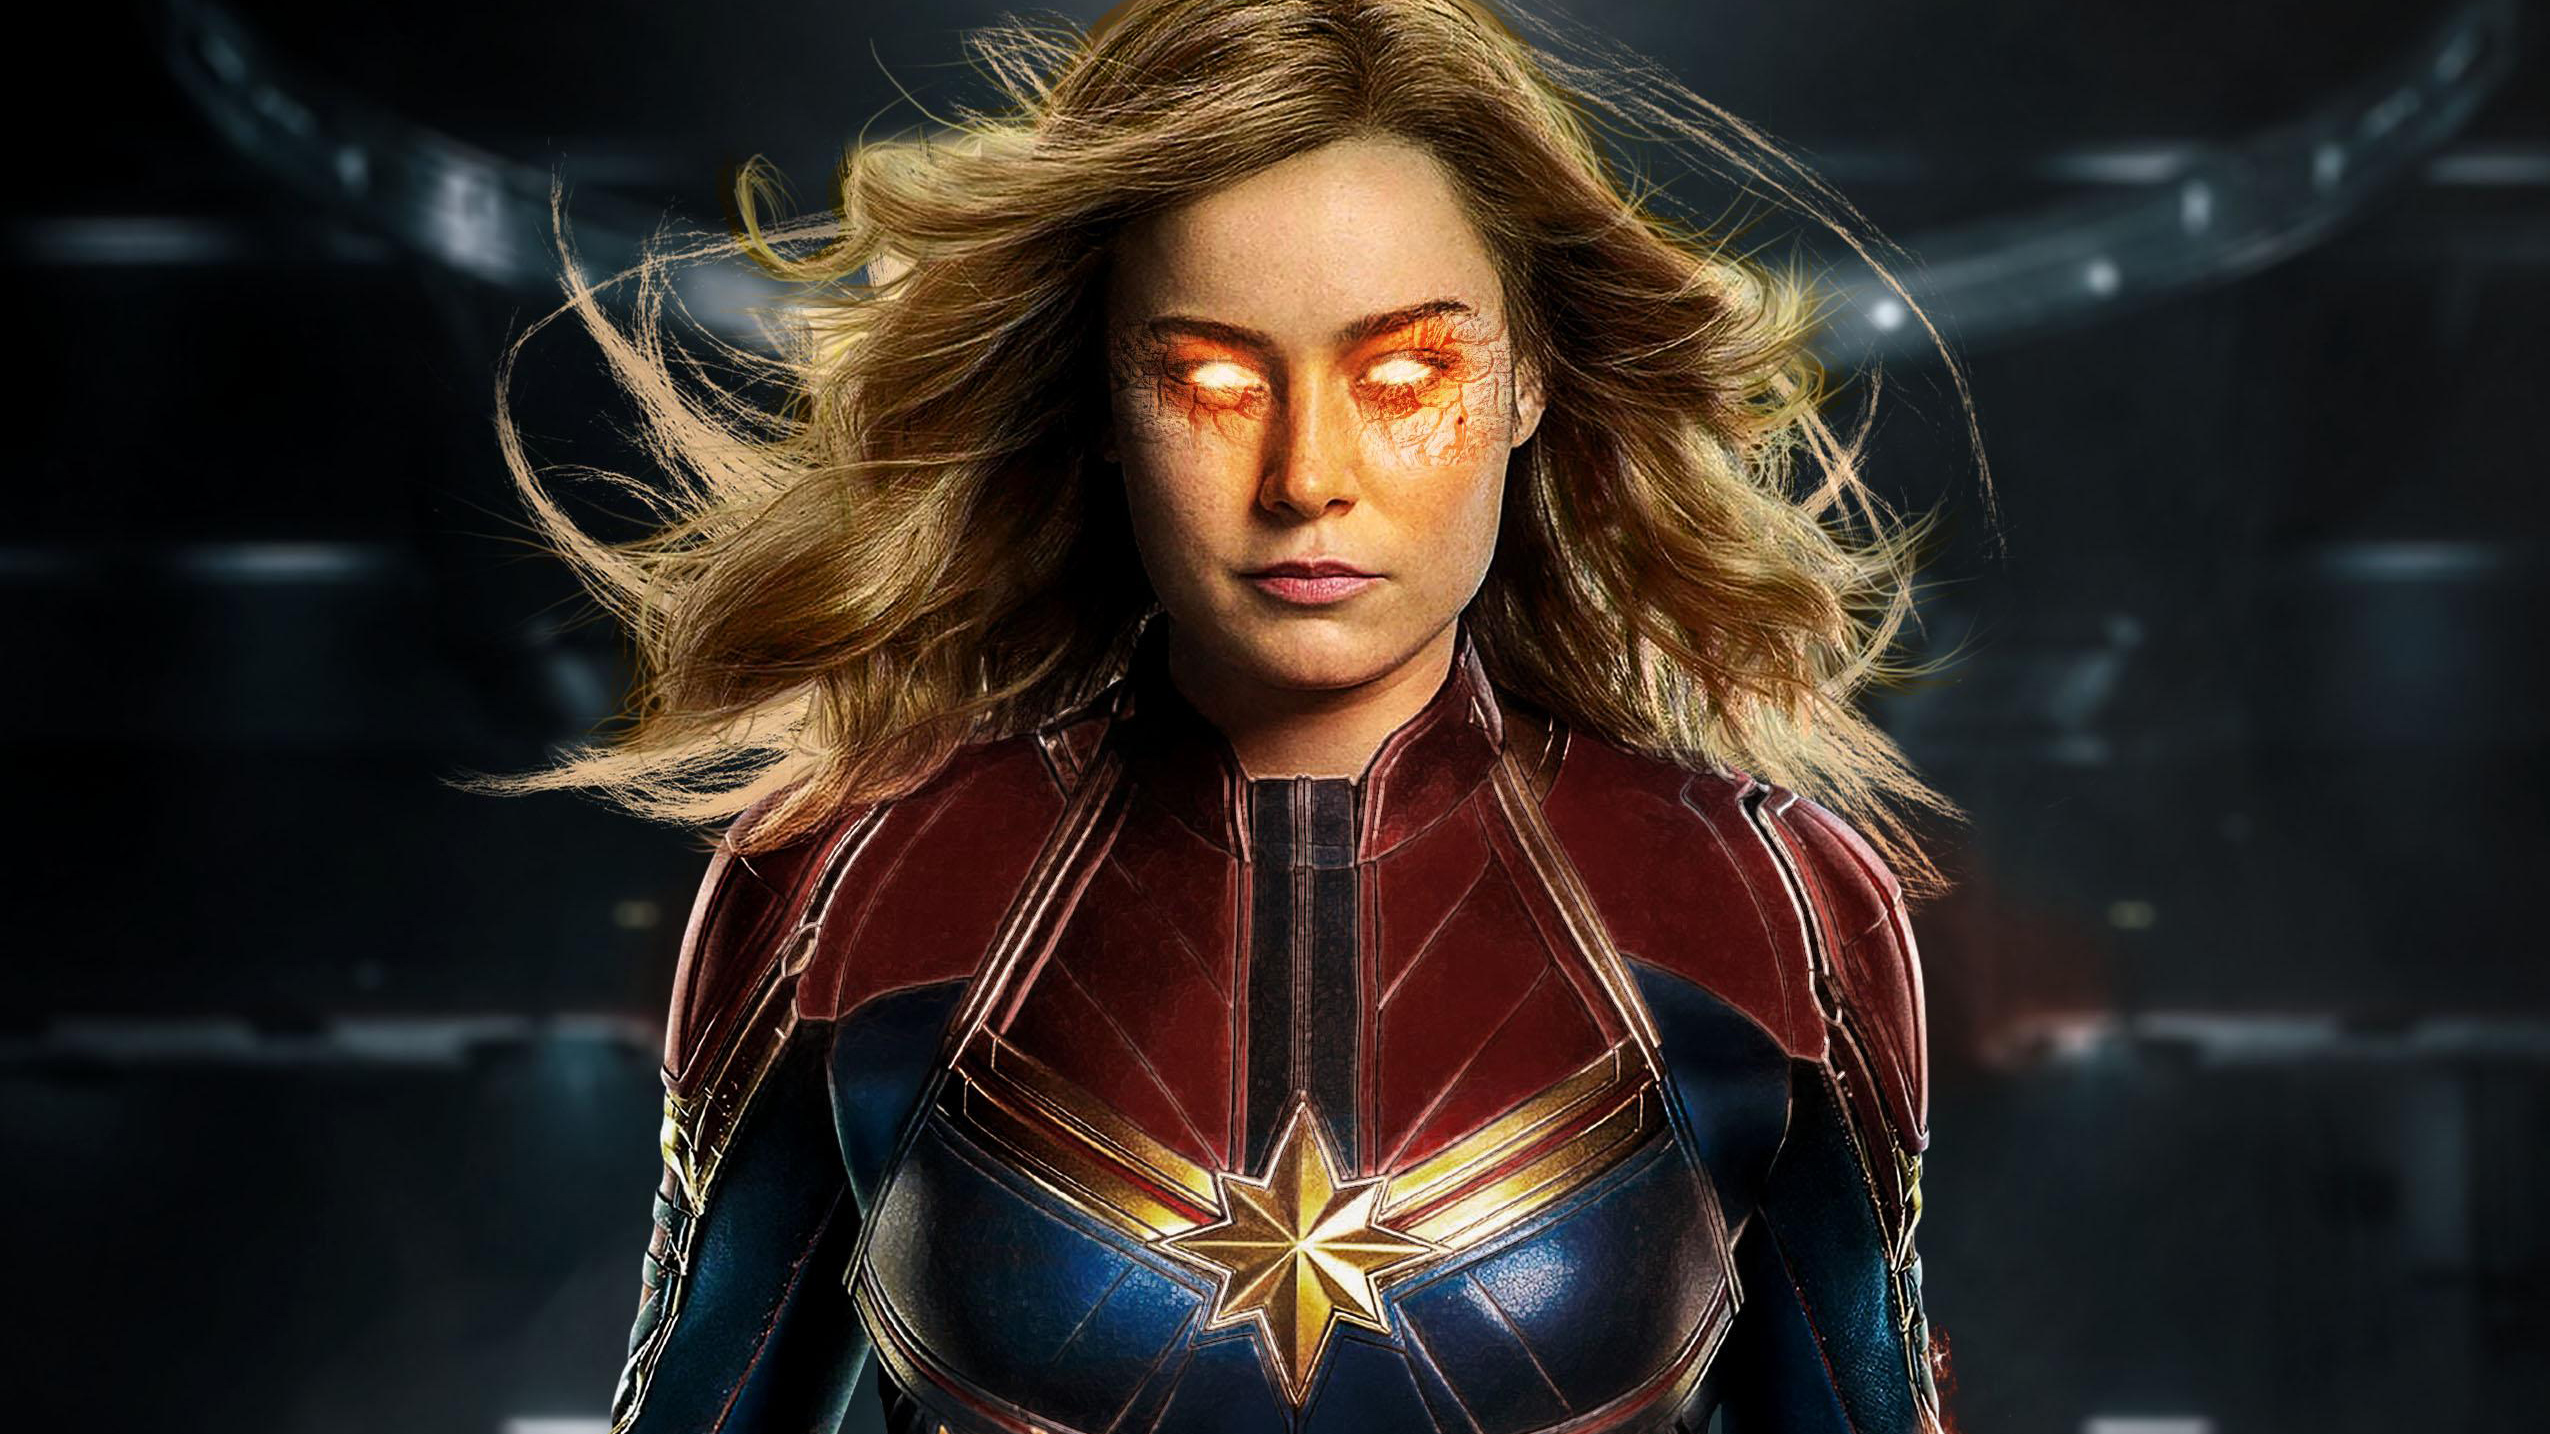 Captain Marvel Movie, HD Movies, 4k Wallpapers, Images ...